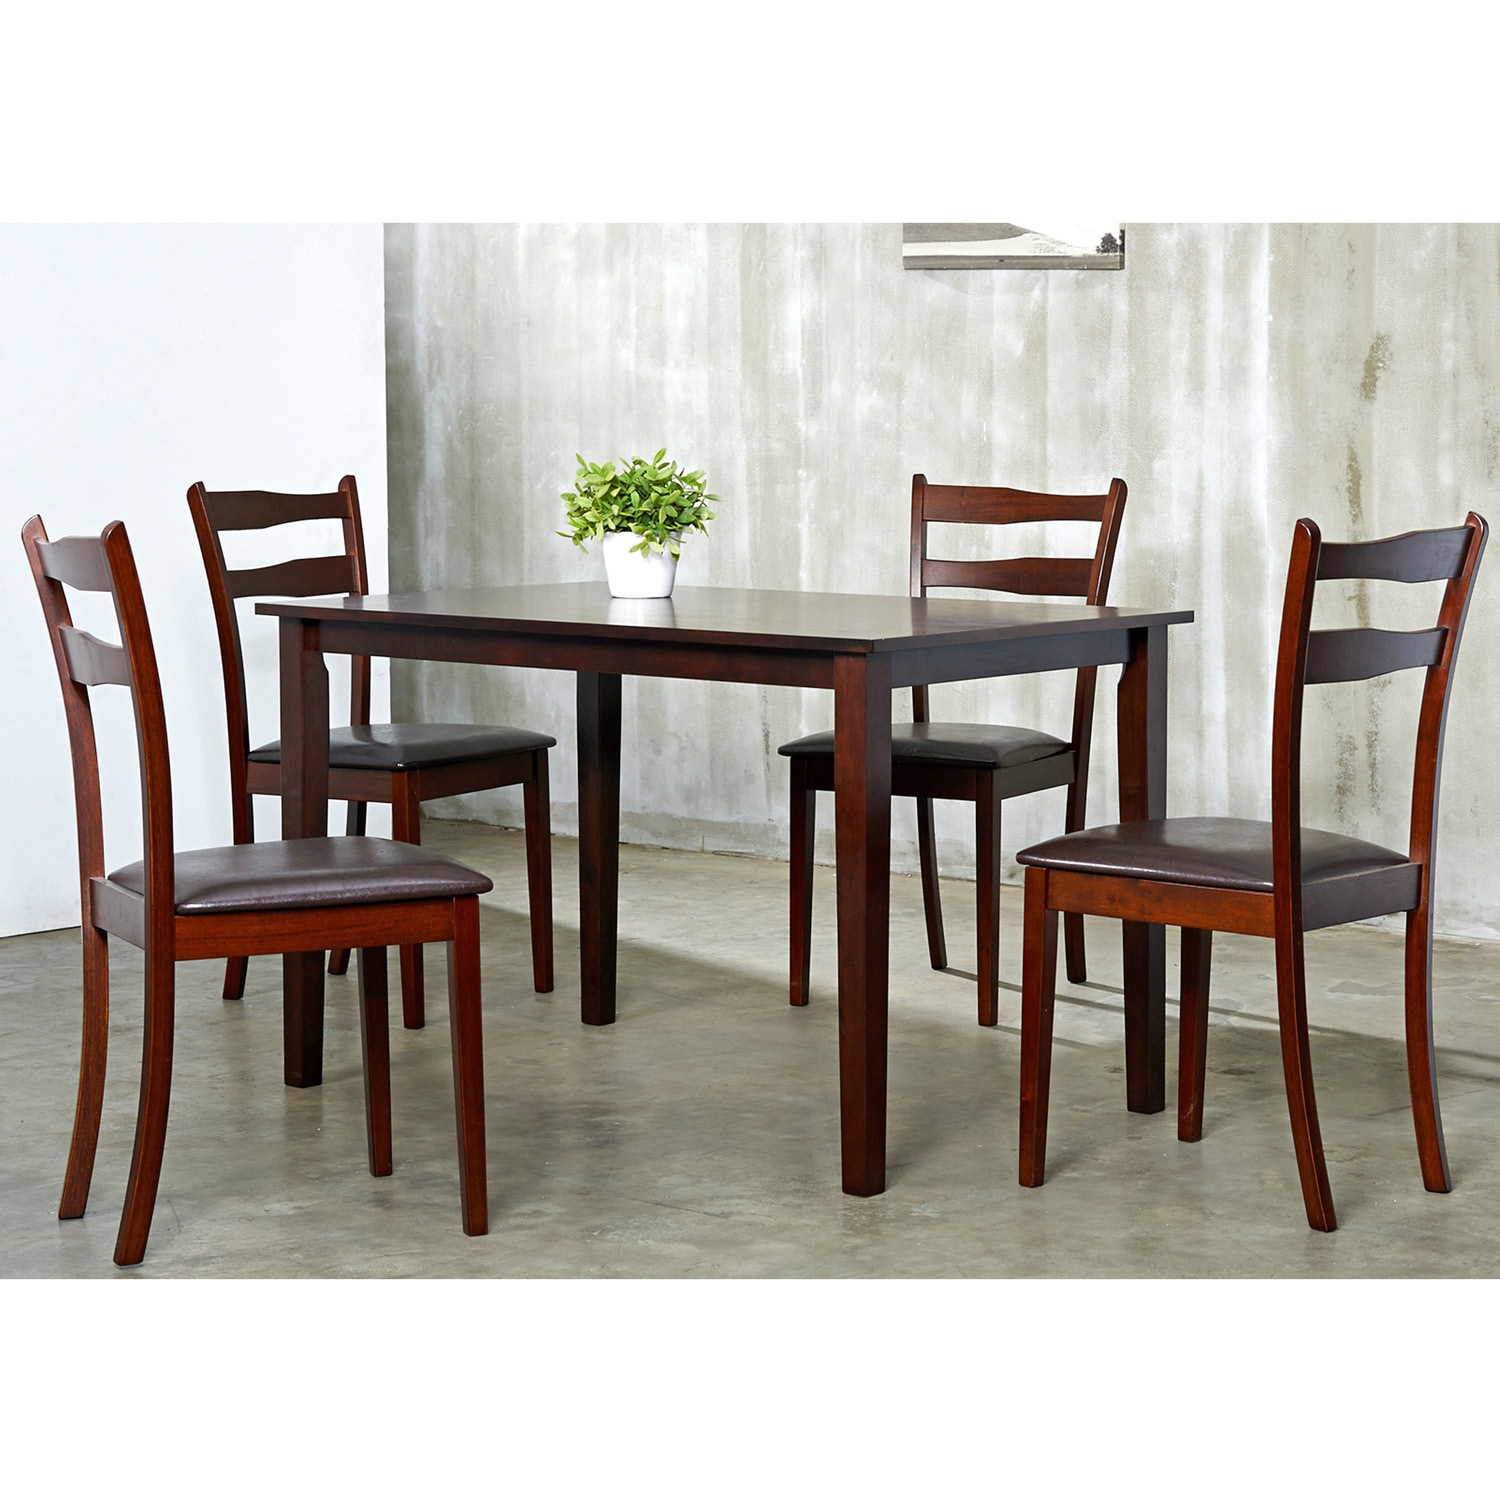 Five Piece Dining Room Sets Callan 5 Piece Dining Room Furniture Set Overstock Shopping Big